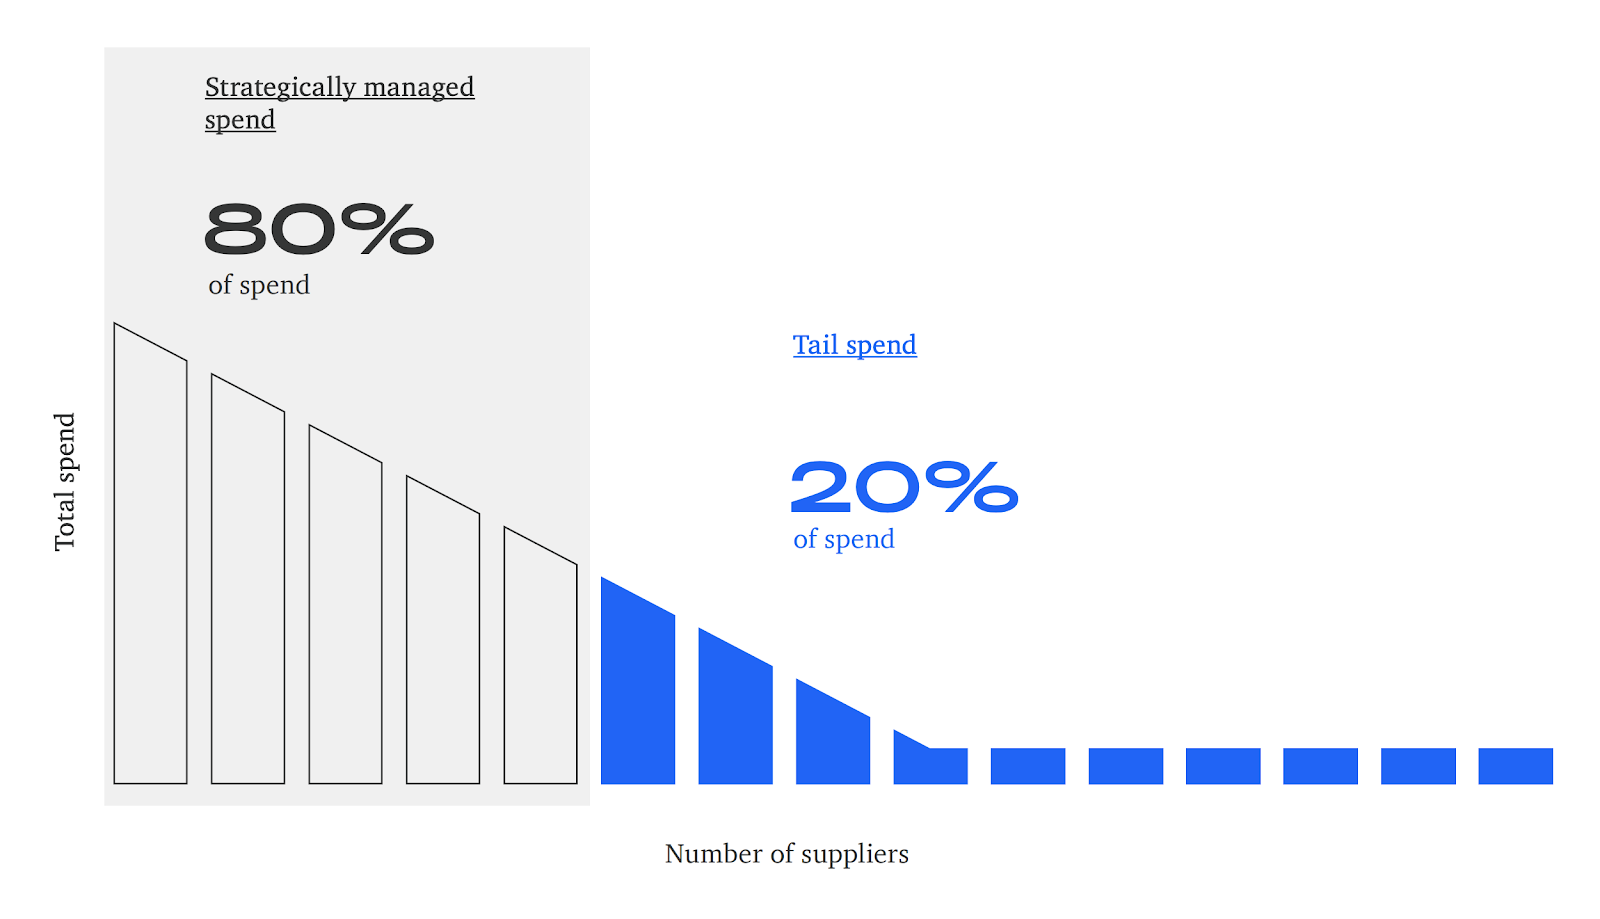 Tail spend graph showing that how tail spend is typically considered the 80% of transactions that constitute 20% of a company's overall spend.